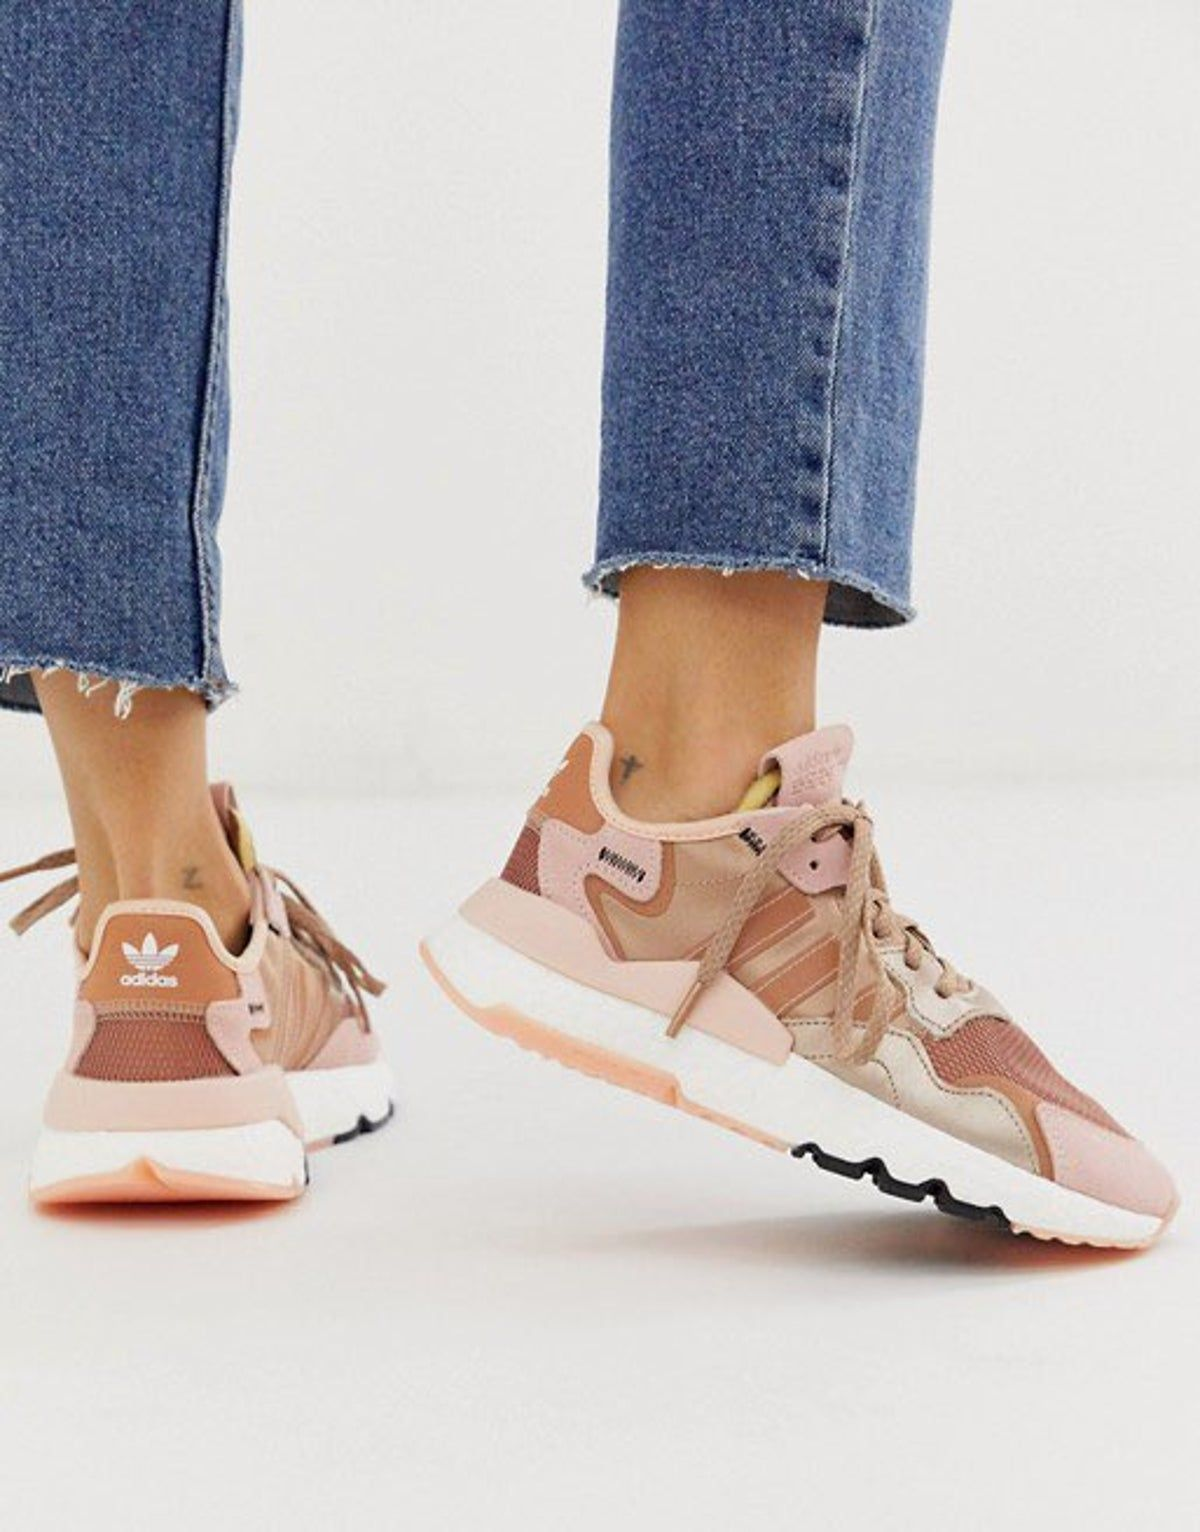 Rose gold nite joggers in 2020 | Sneakers, Sneakers fashion ...